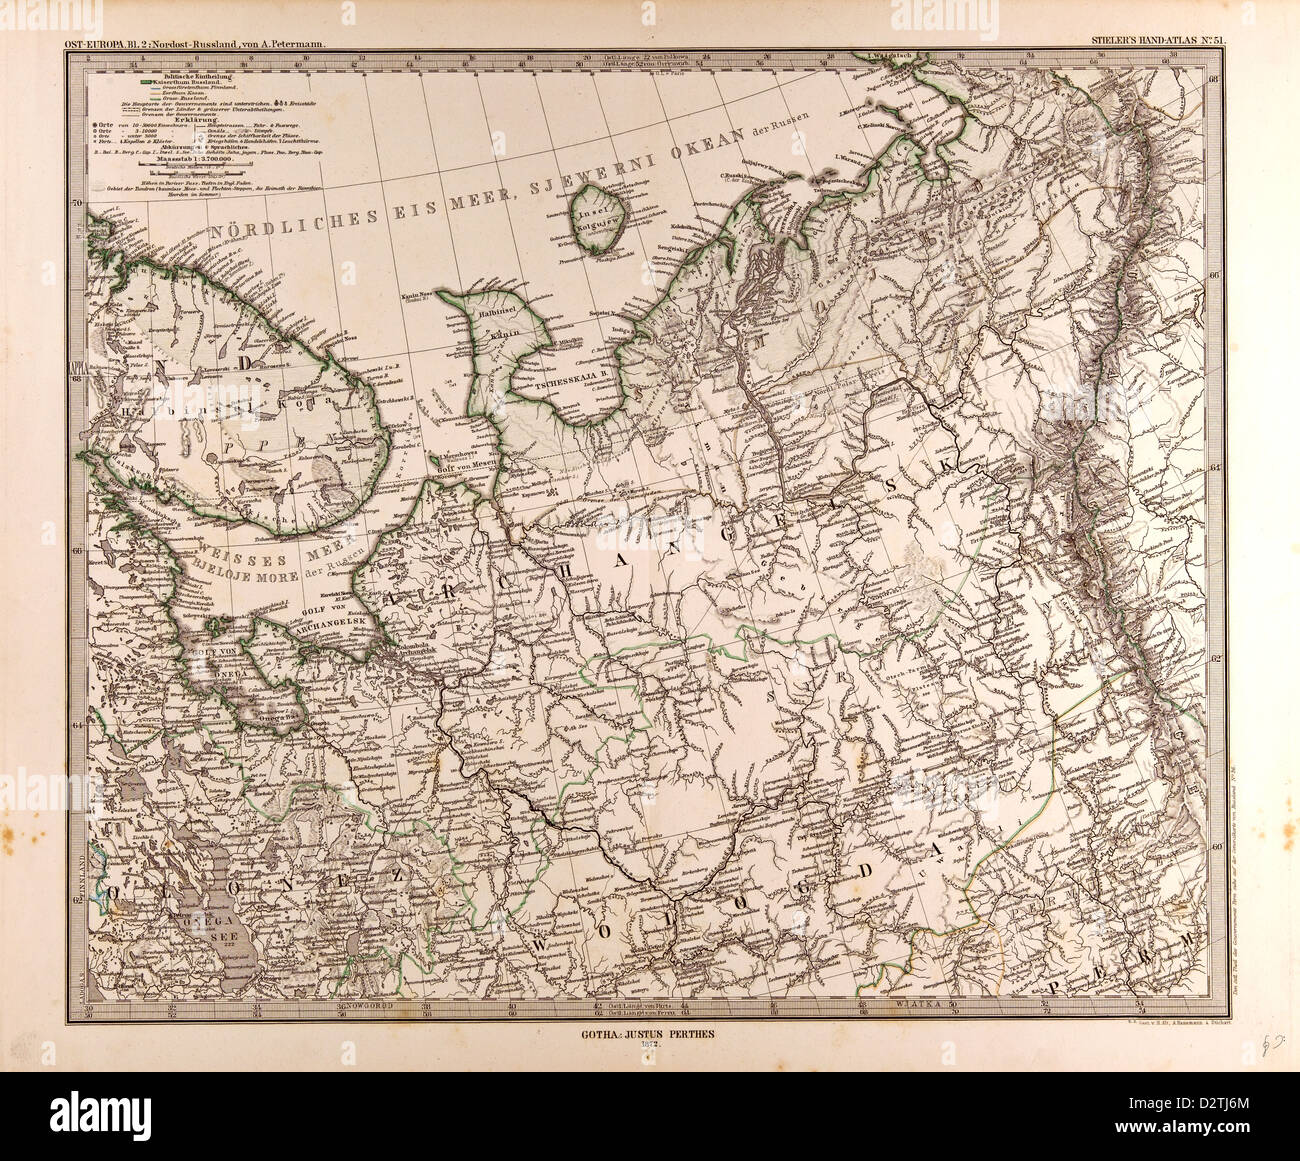 Map Russia Europe Stock Photos & Map Russia Europe Stock Images - Alamy